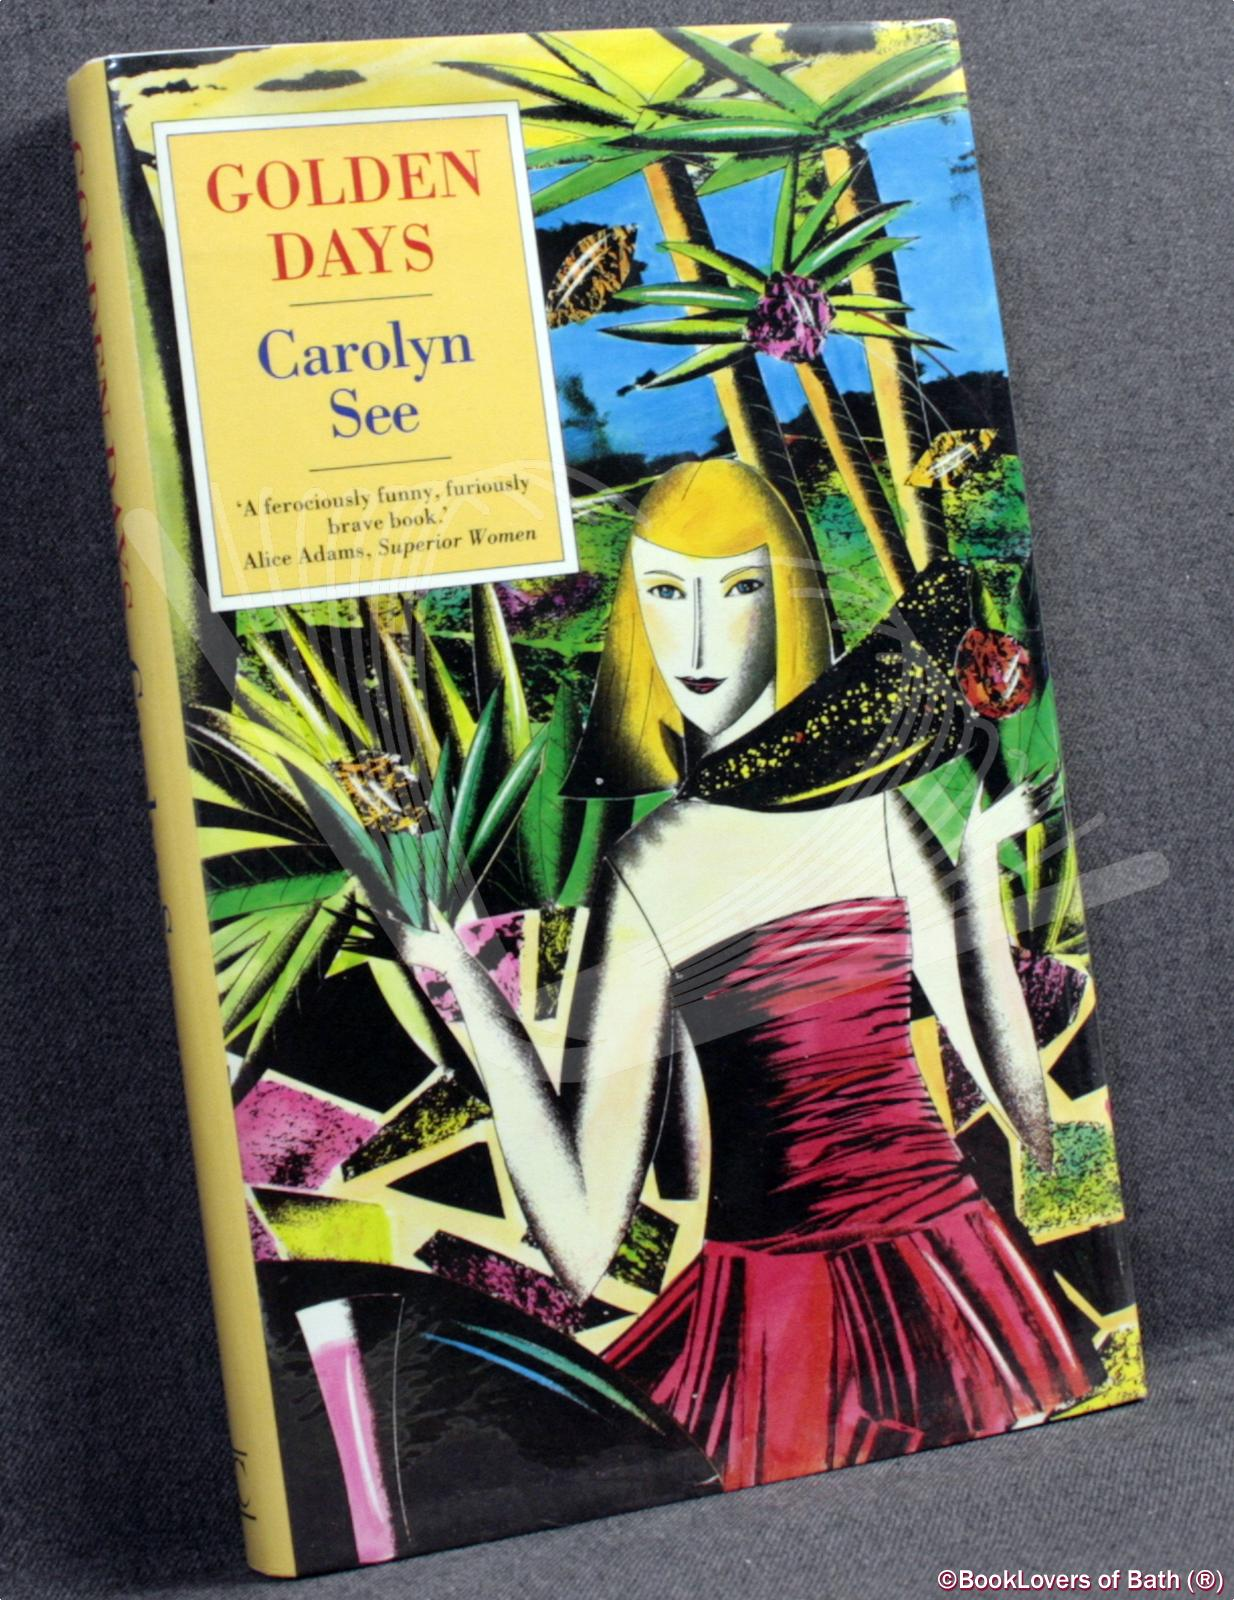 Golden Days - Carolyn See